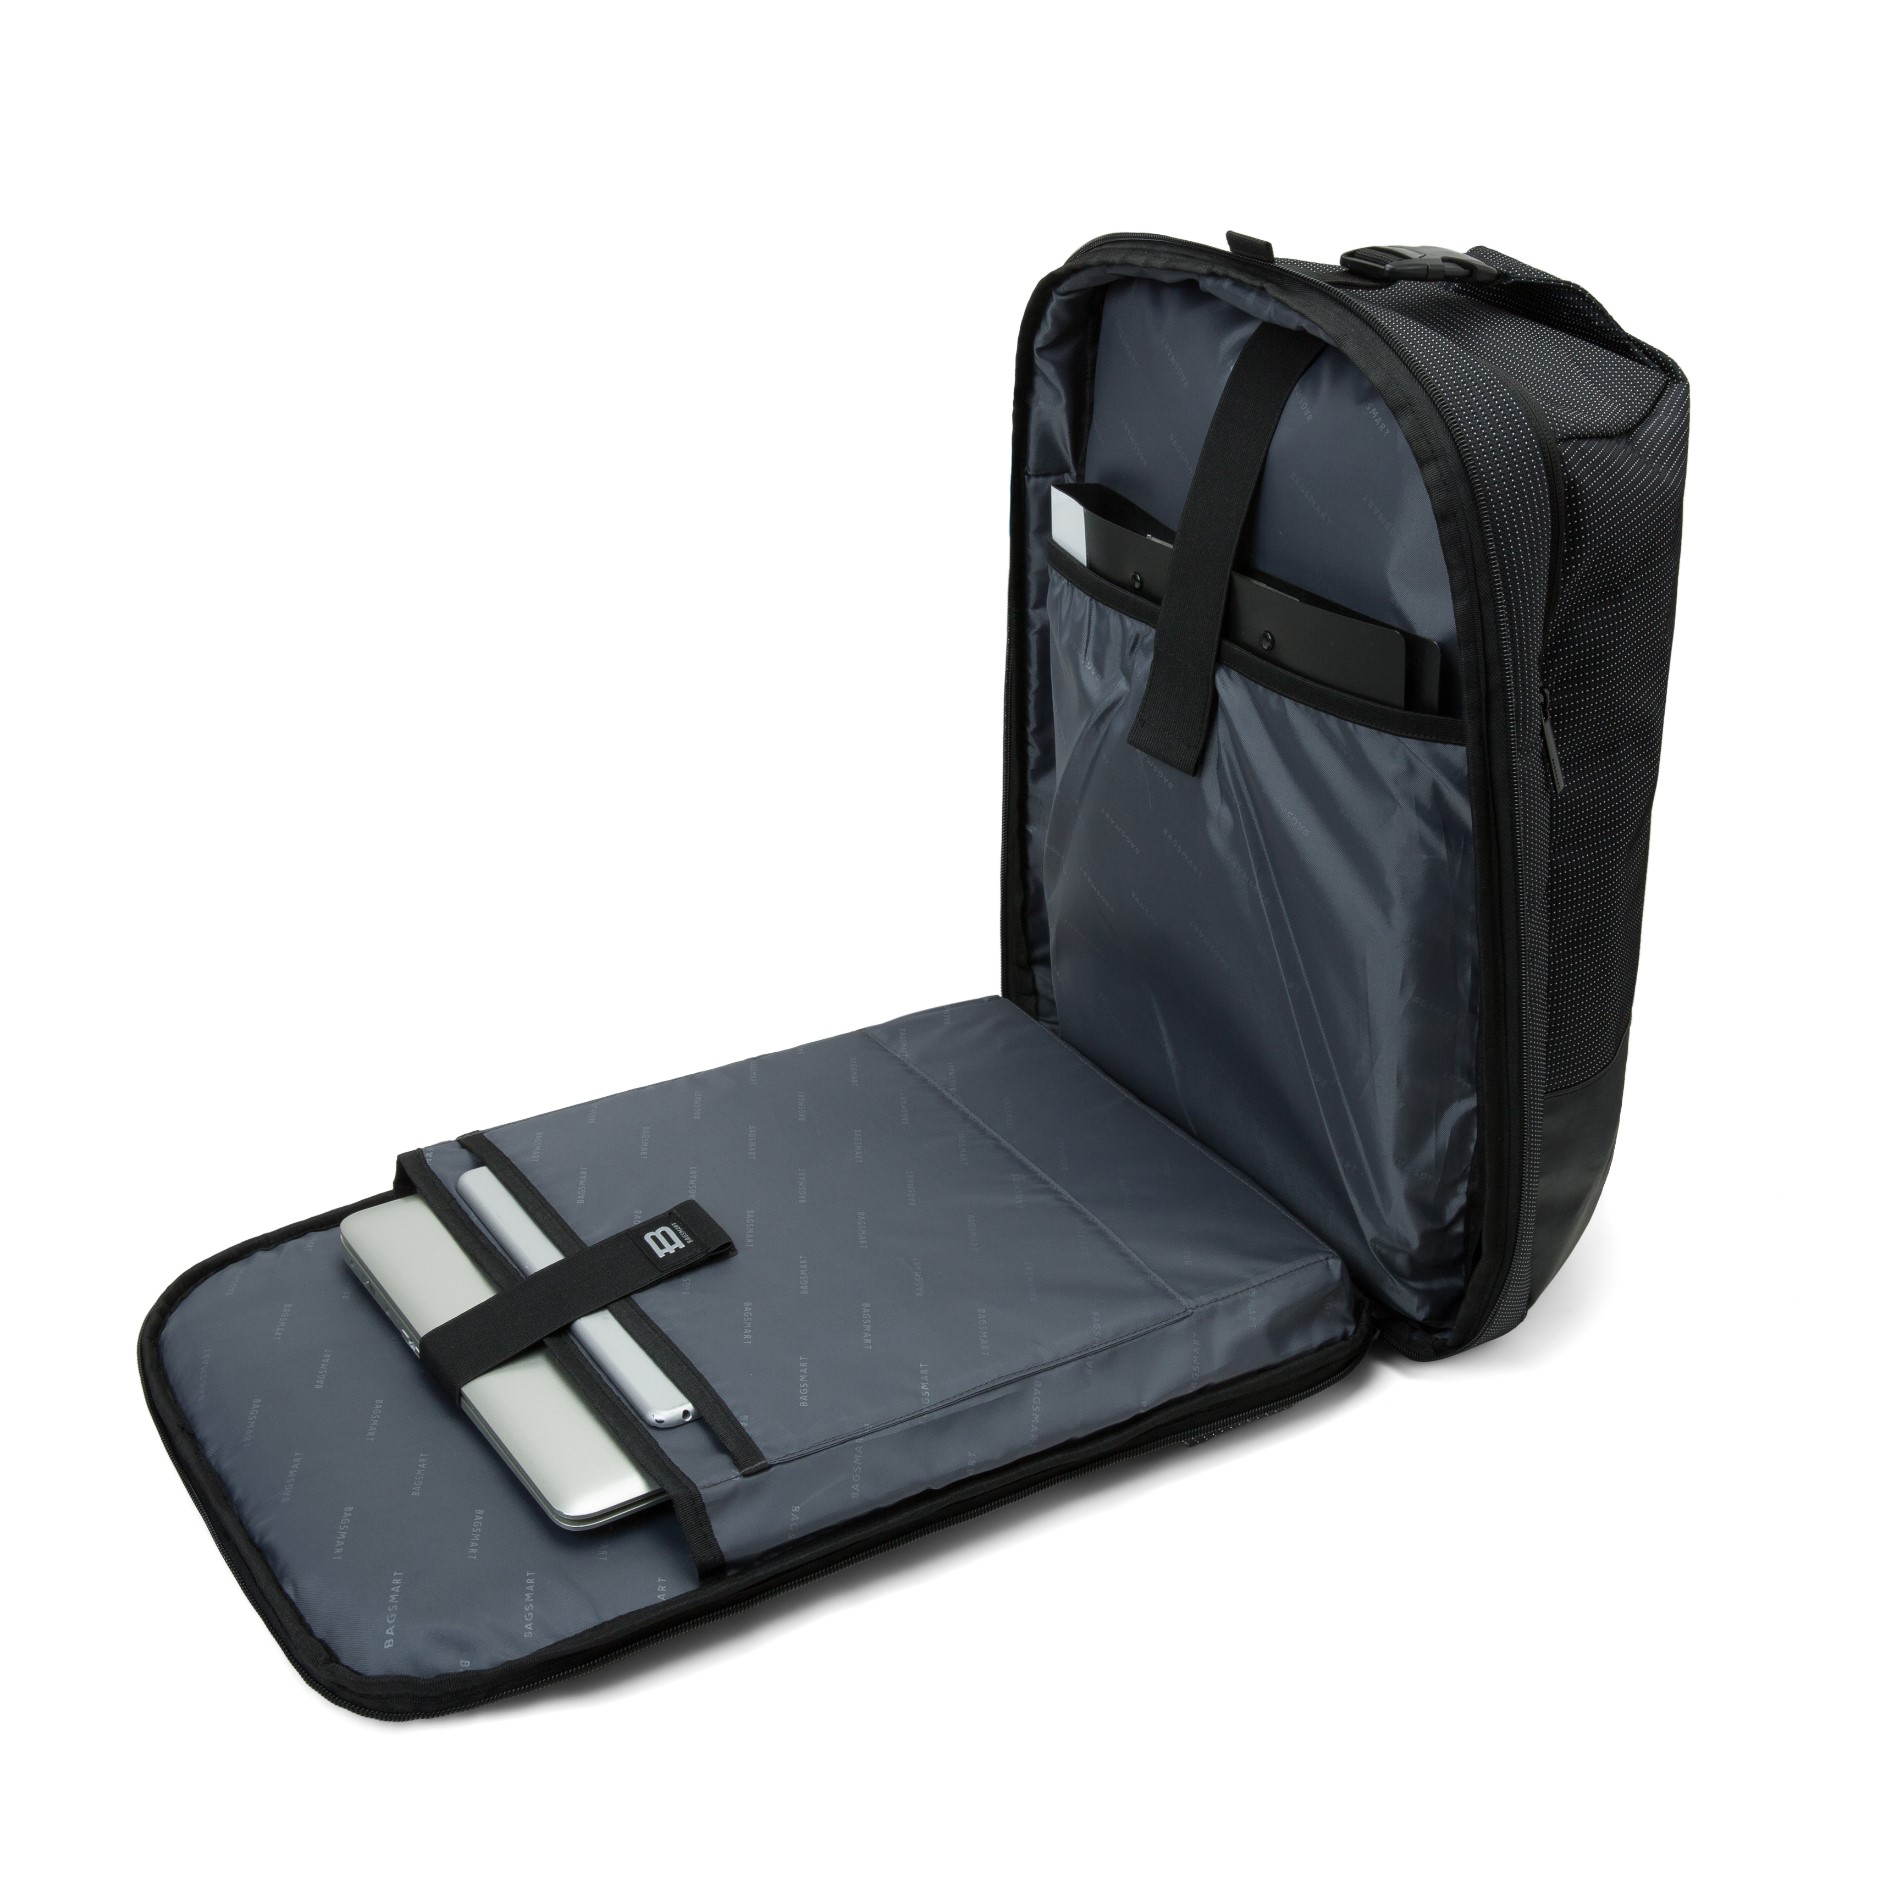 Fashion Backpack Manufacturers, Fashion Backpack Factory, Supply Fashion Backpack